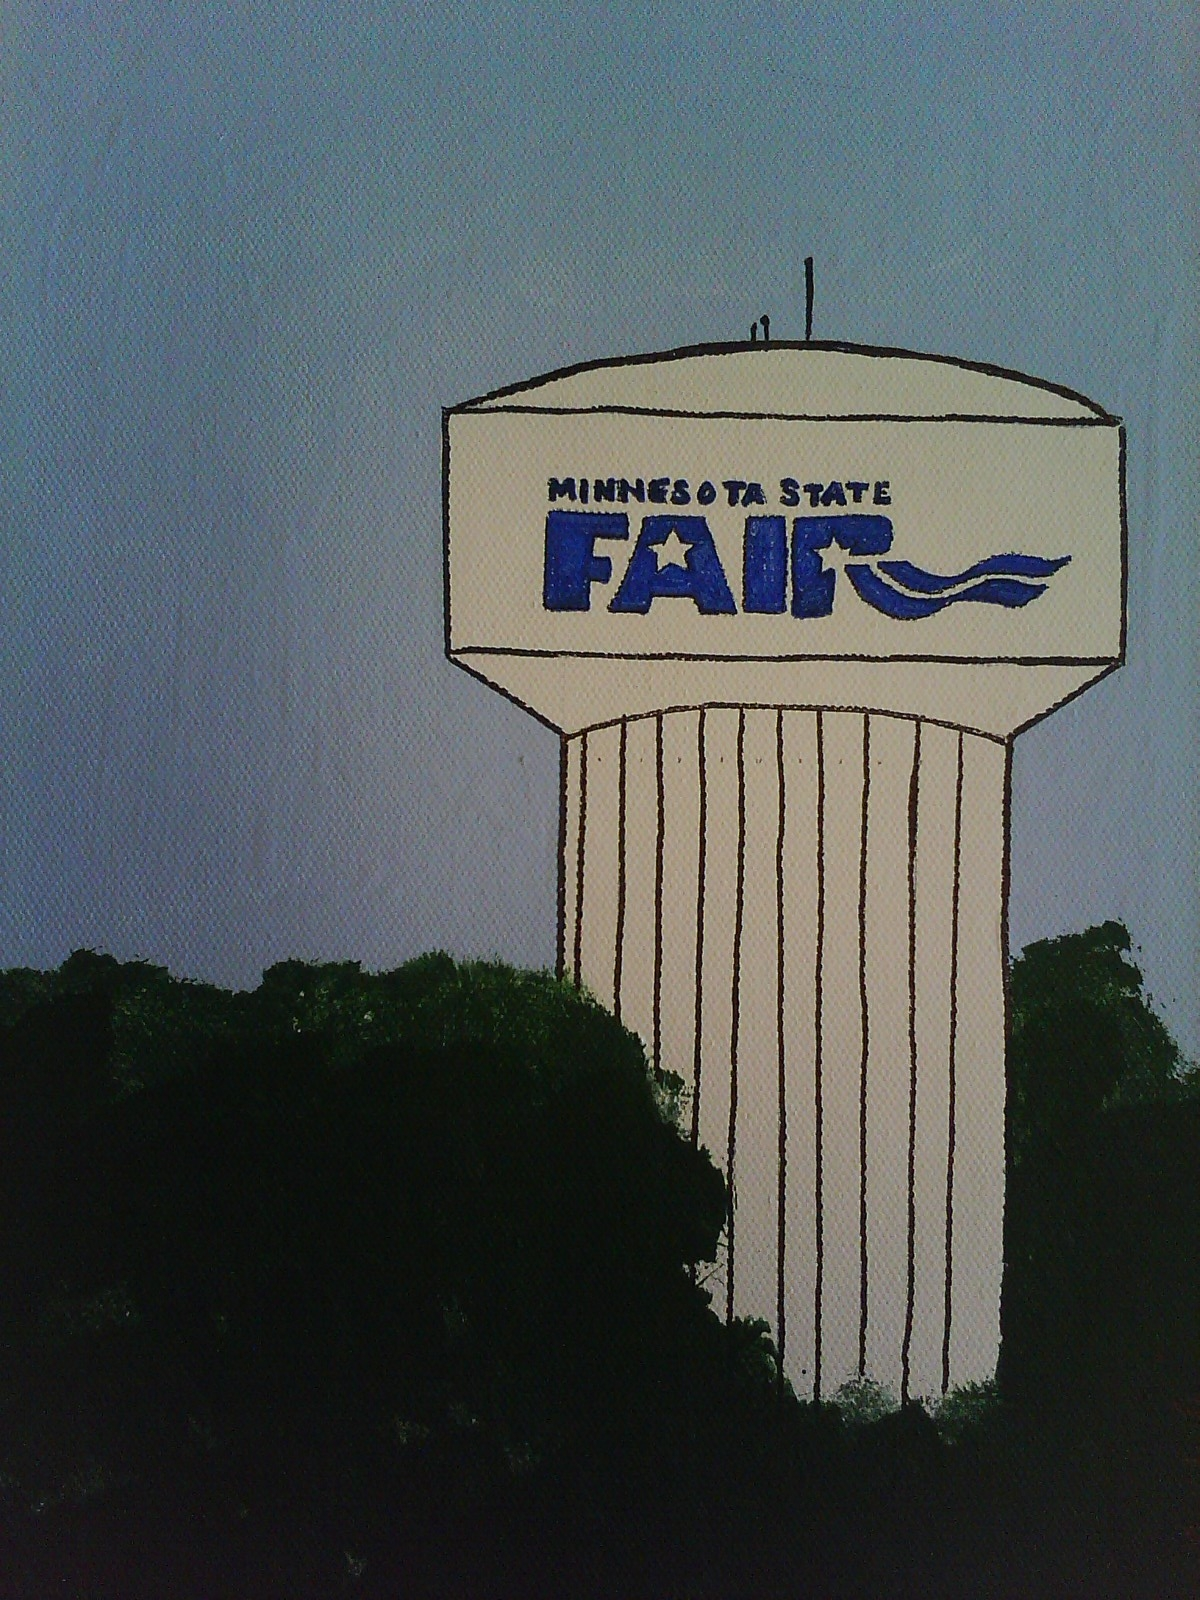 Statefair_original